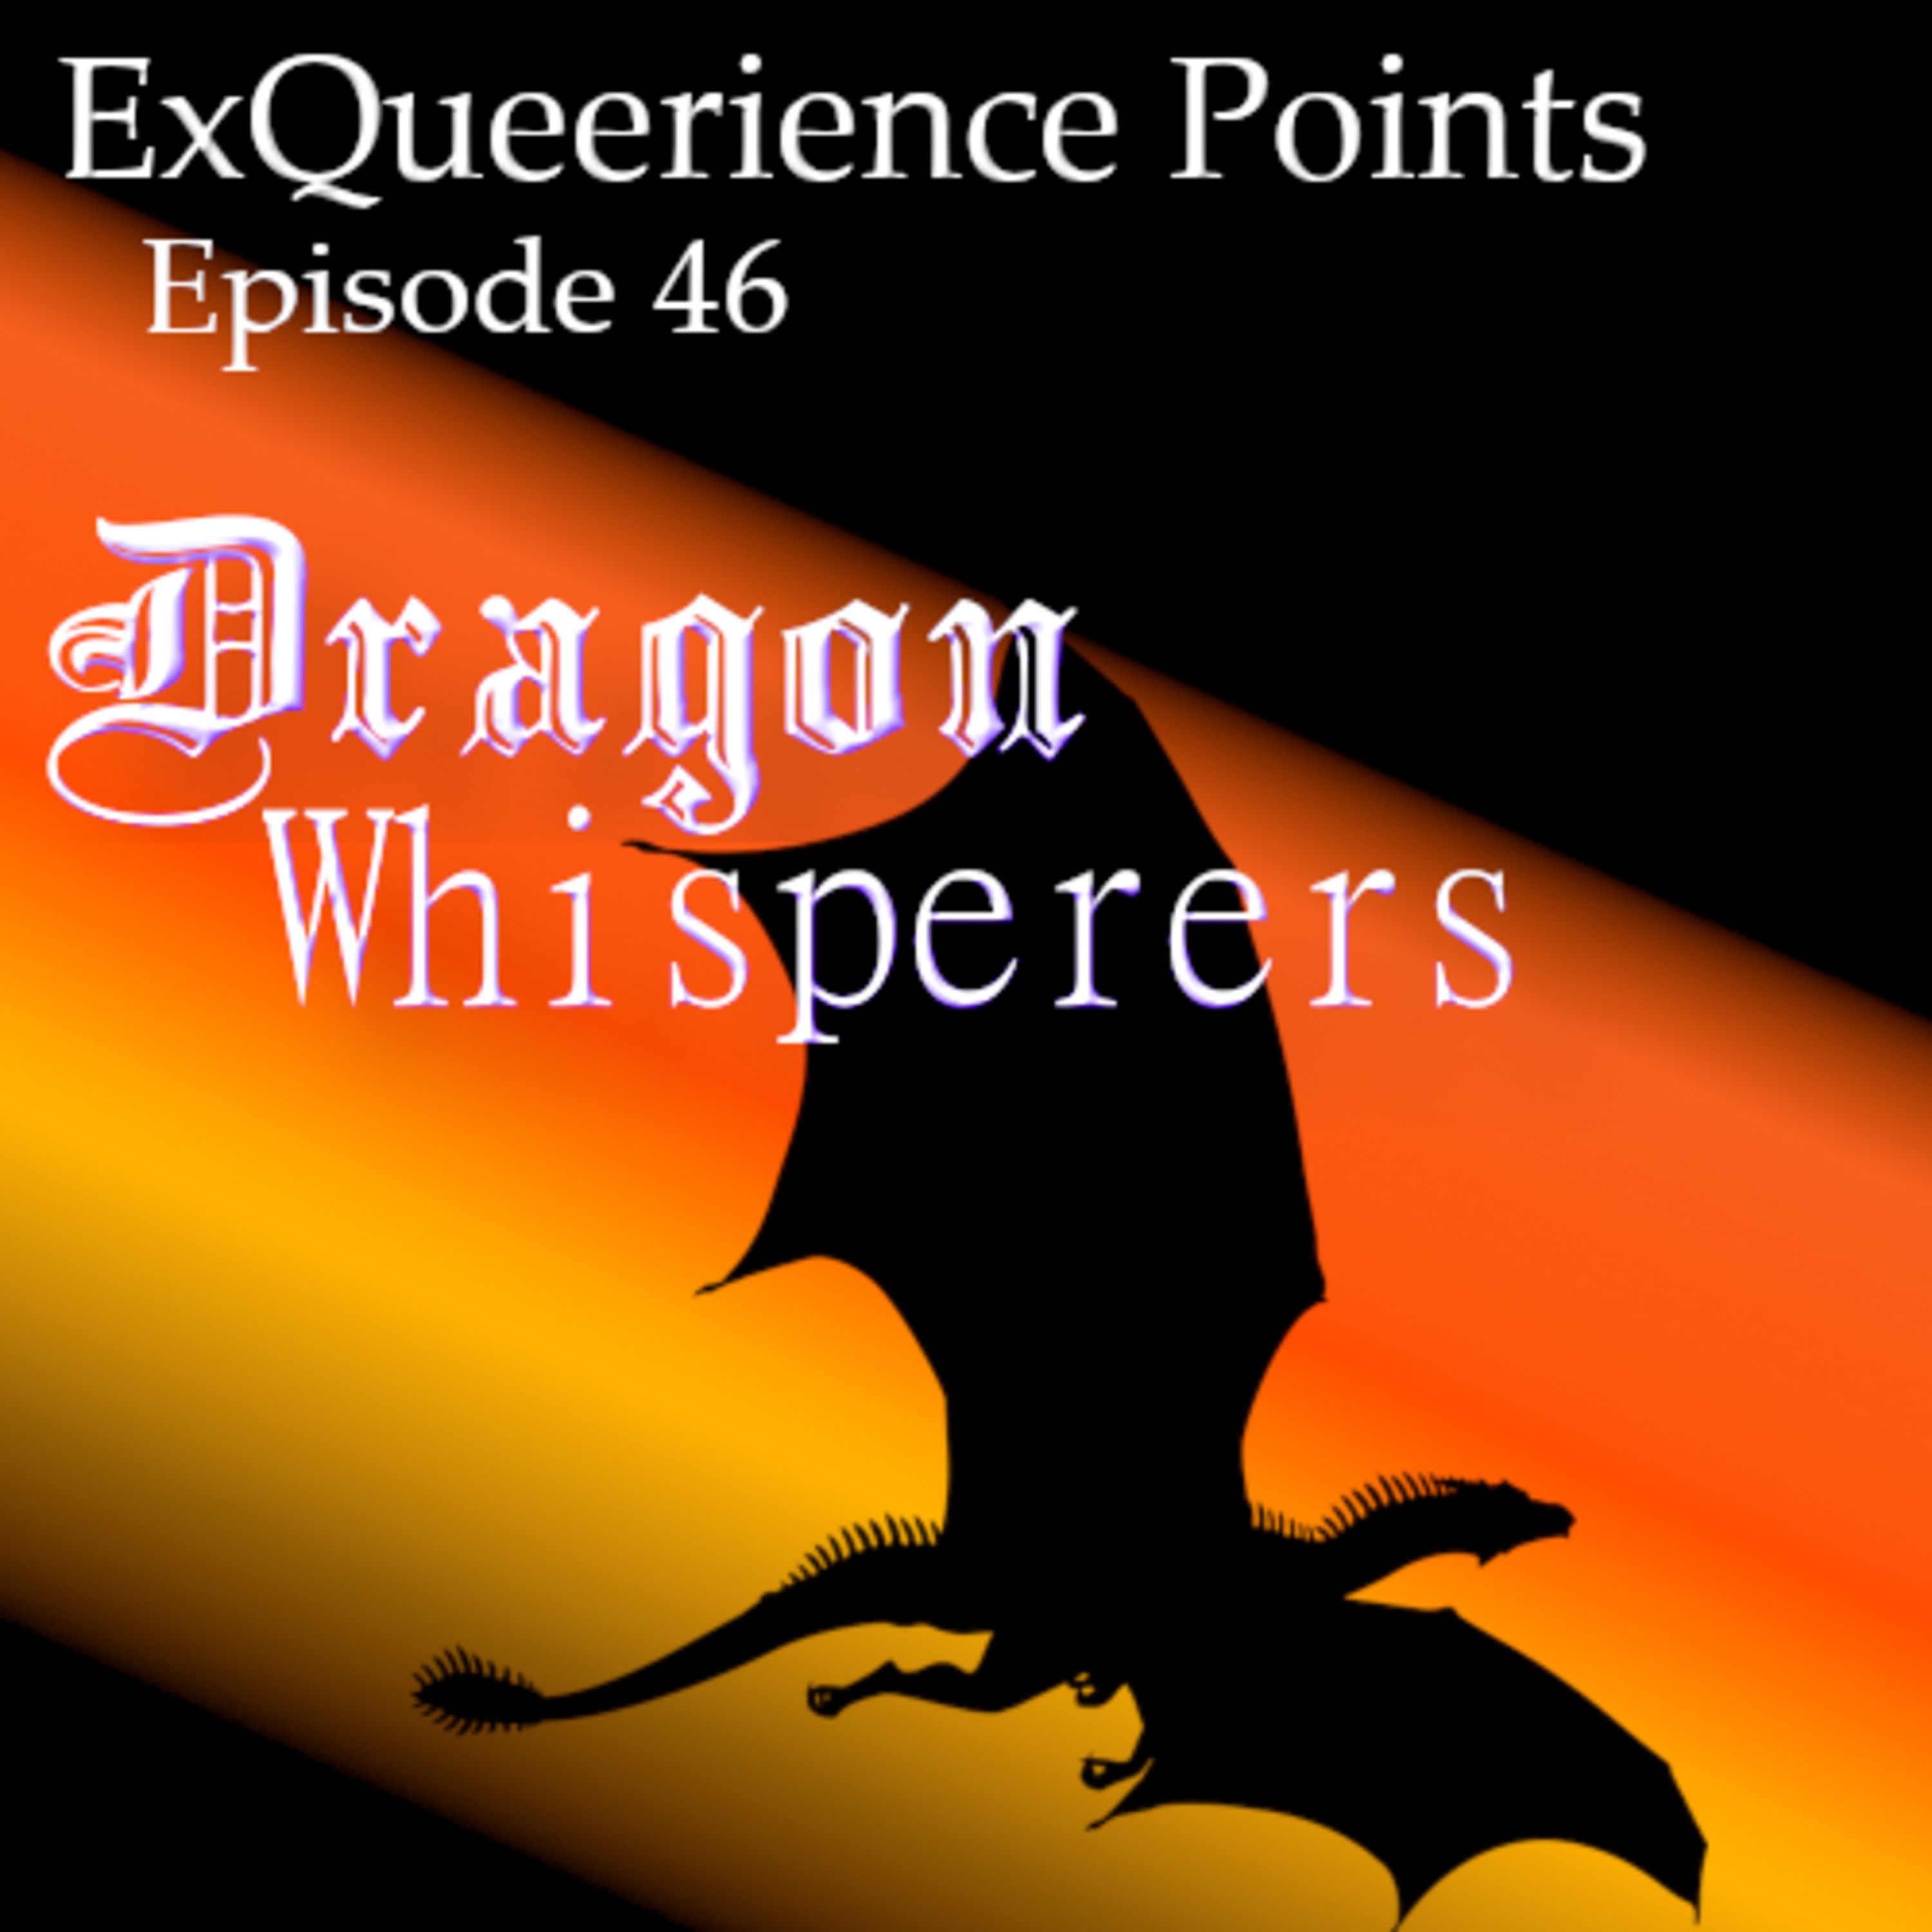 Episode 46 Dragon Whisperers